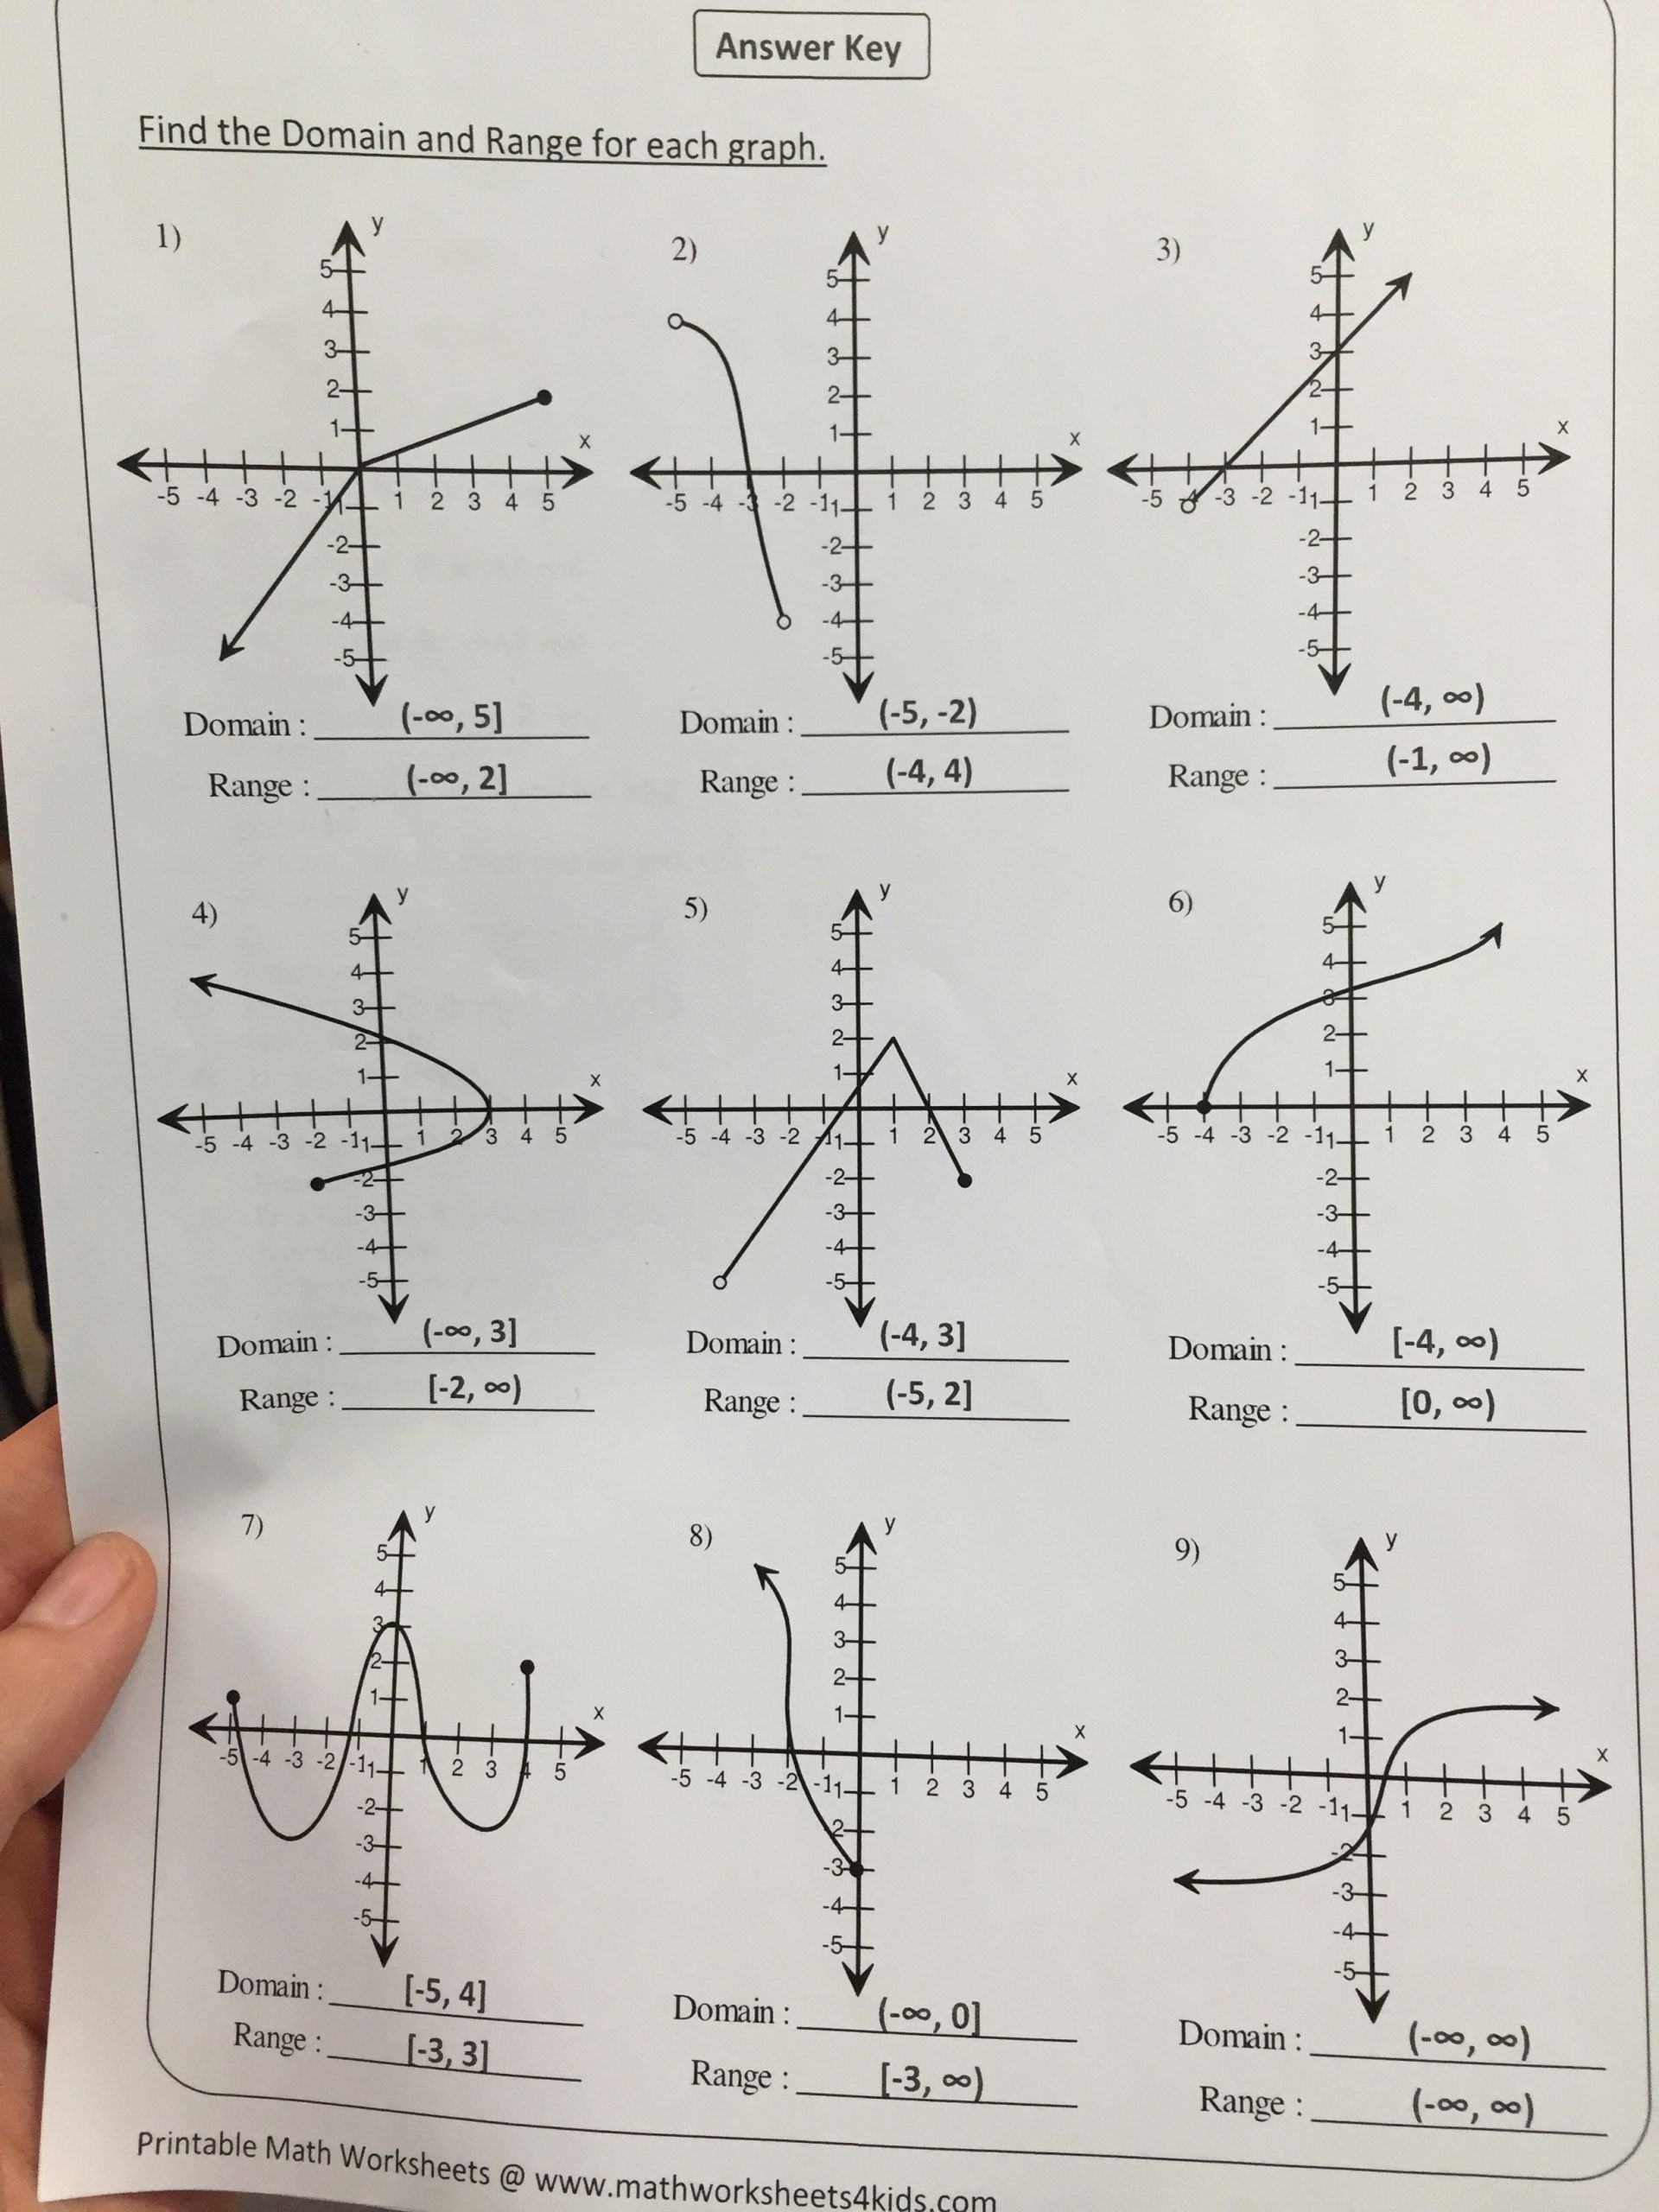 Domain and Range From Graphs Worksheet Awesome Printables Domain and Range Worksheets with Answers